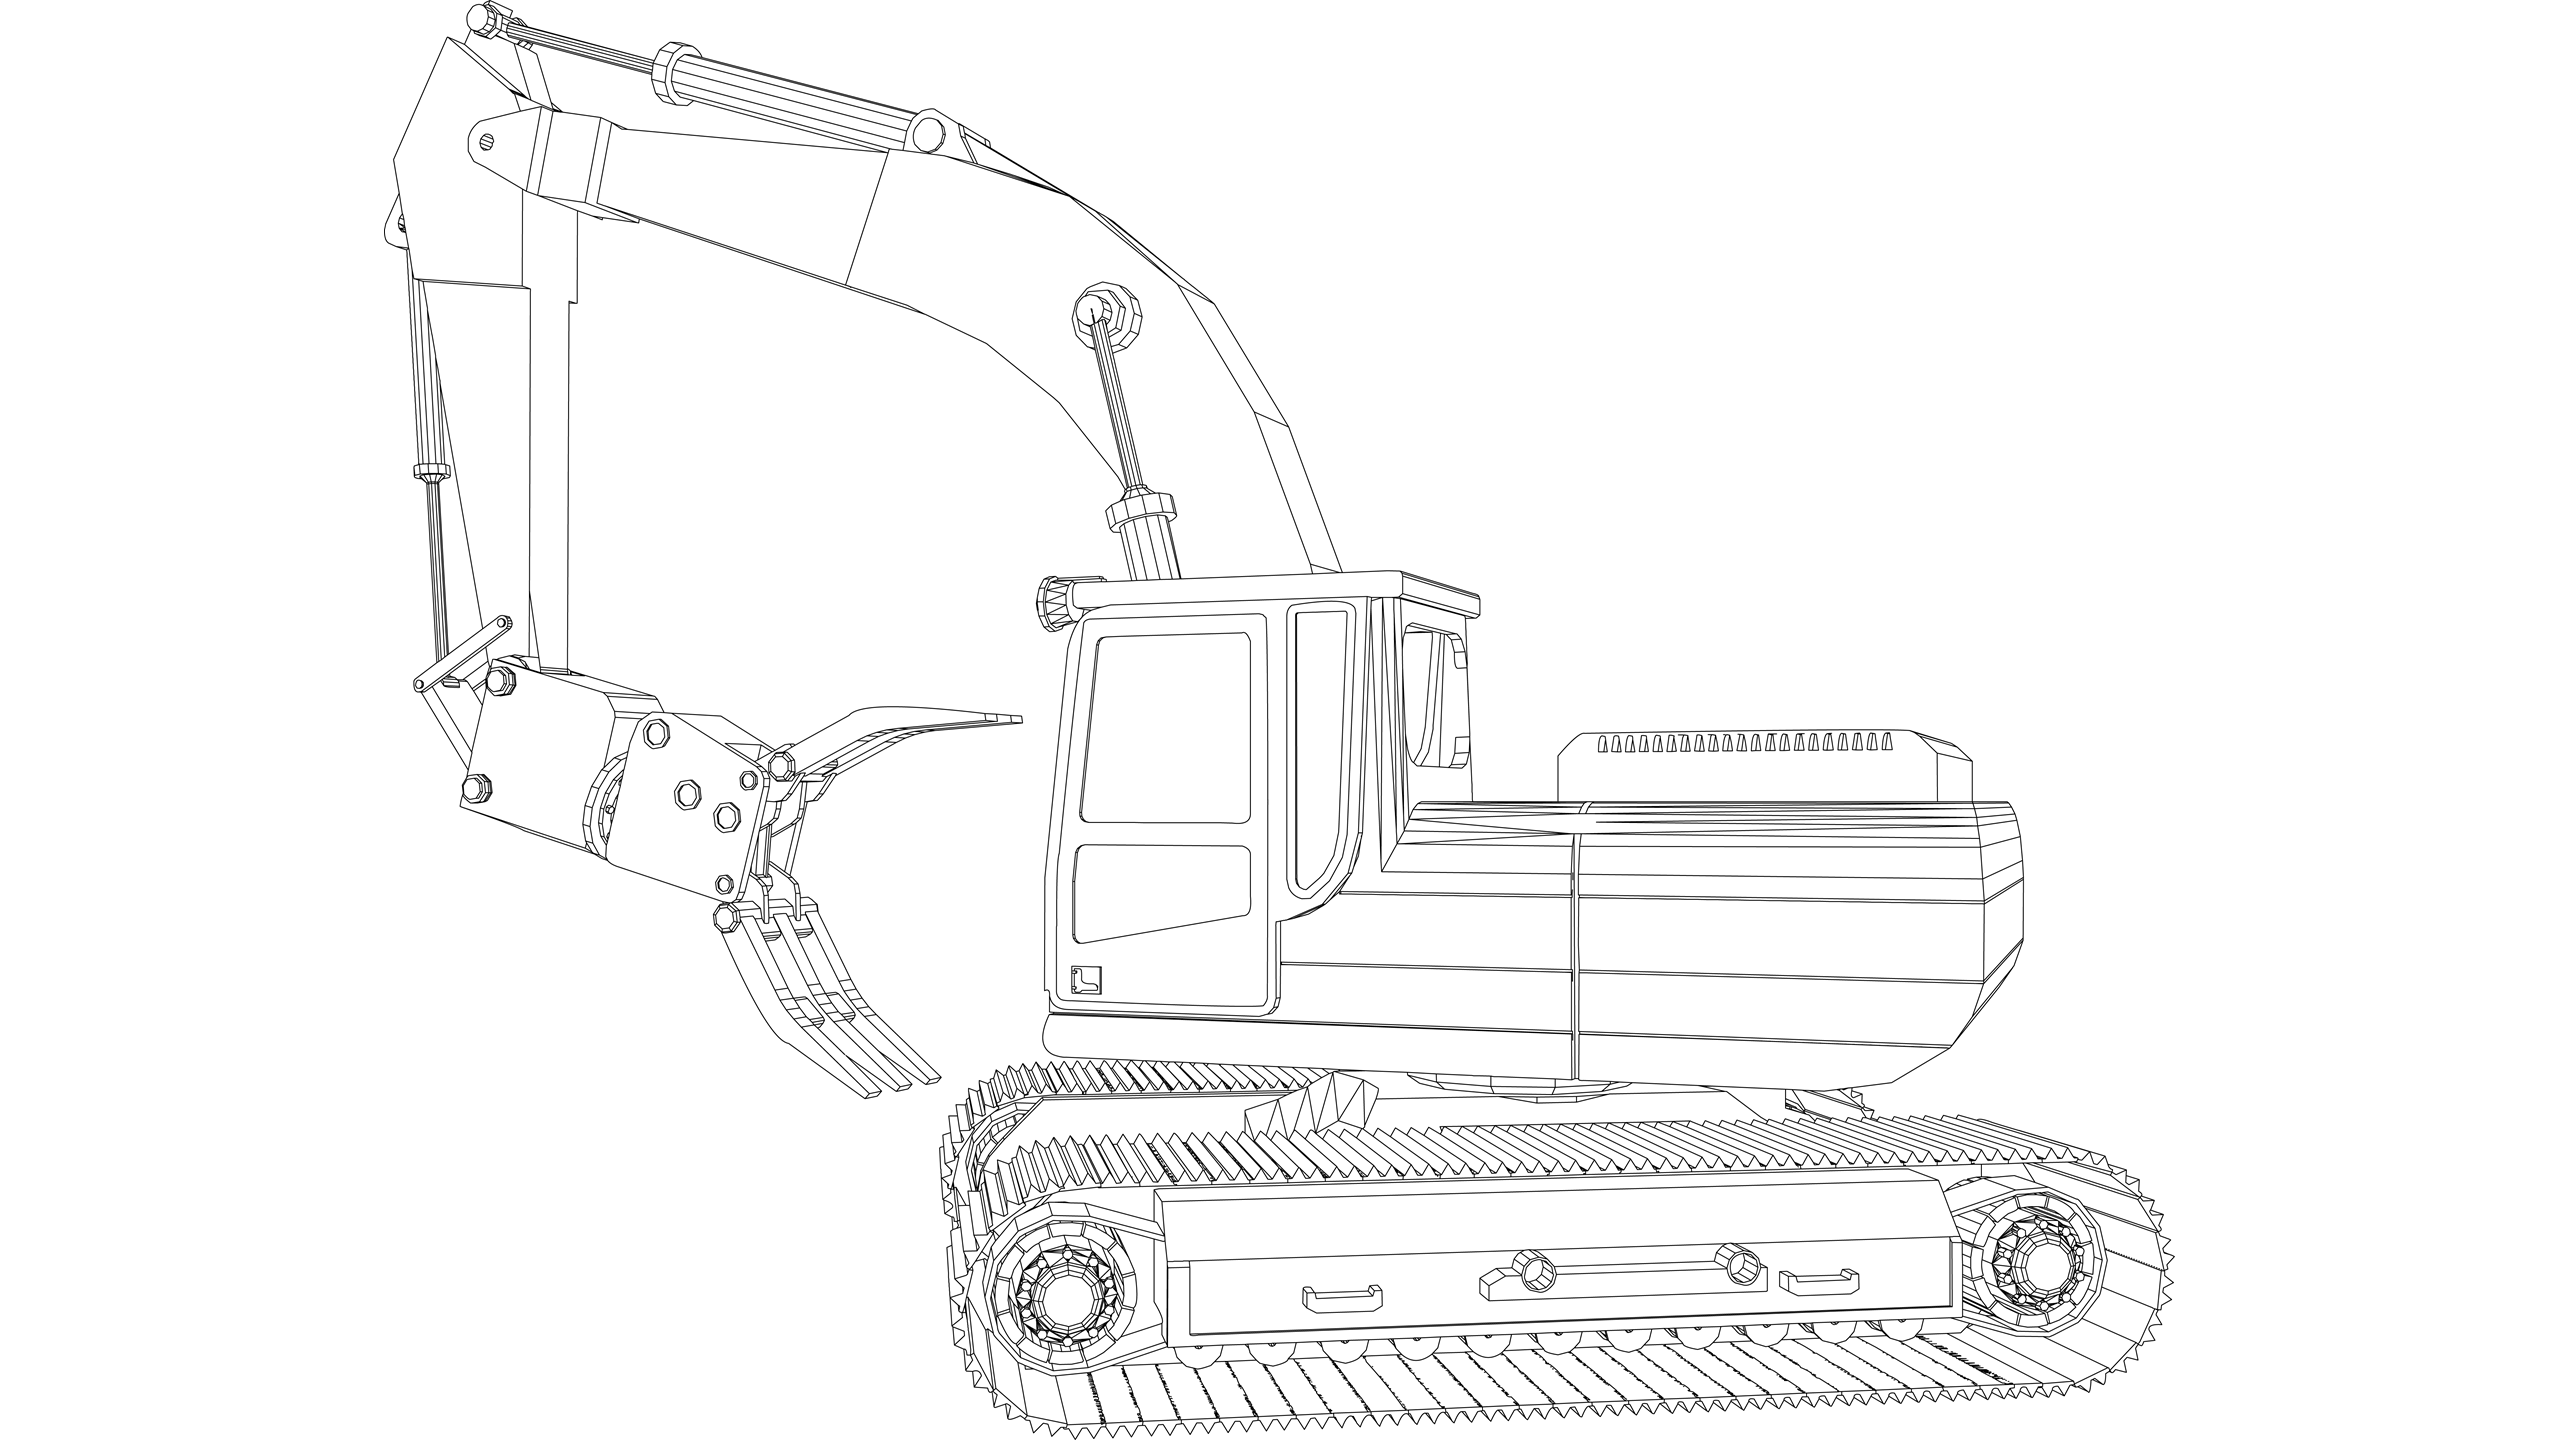 Vector Image: Mobile Crane with Grab